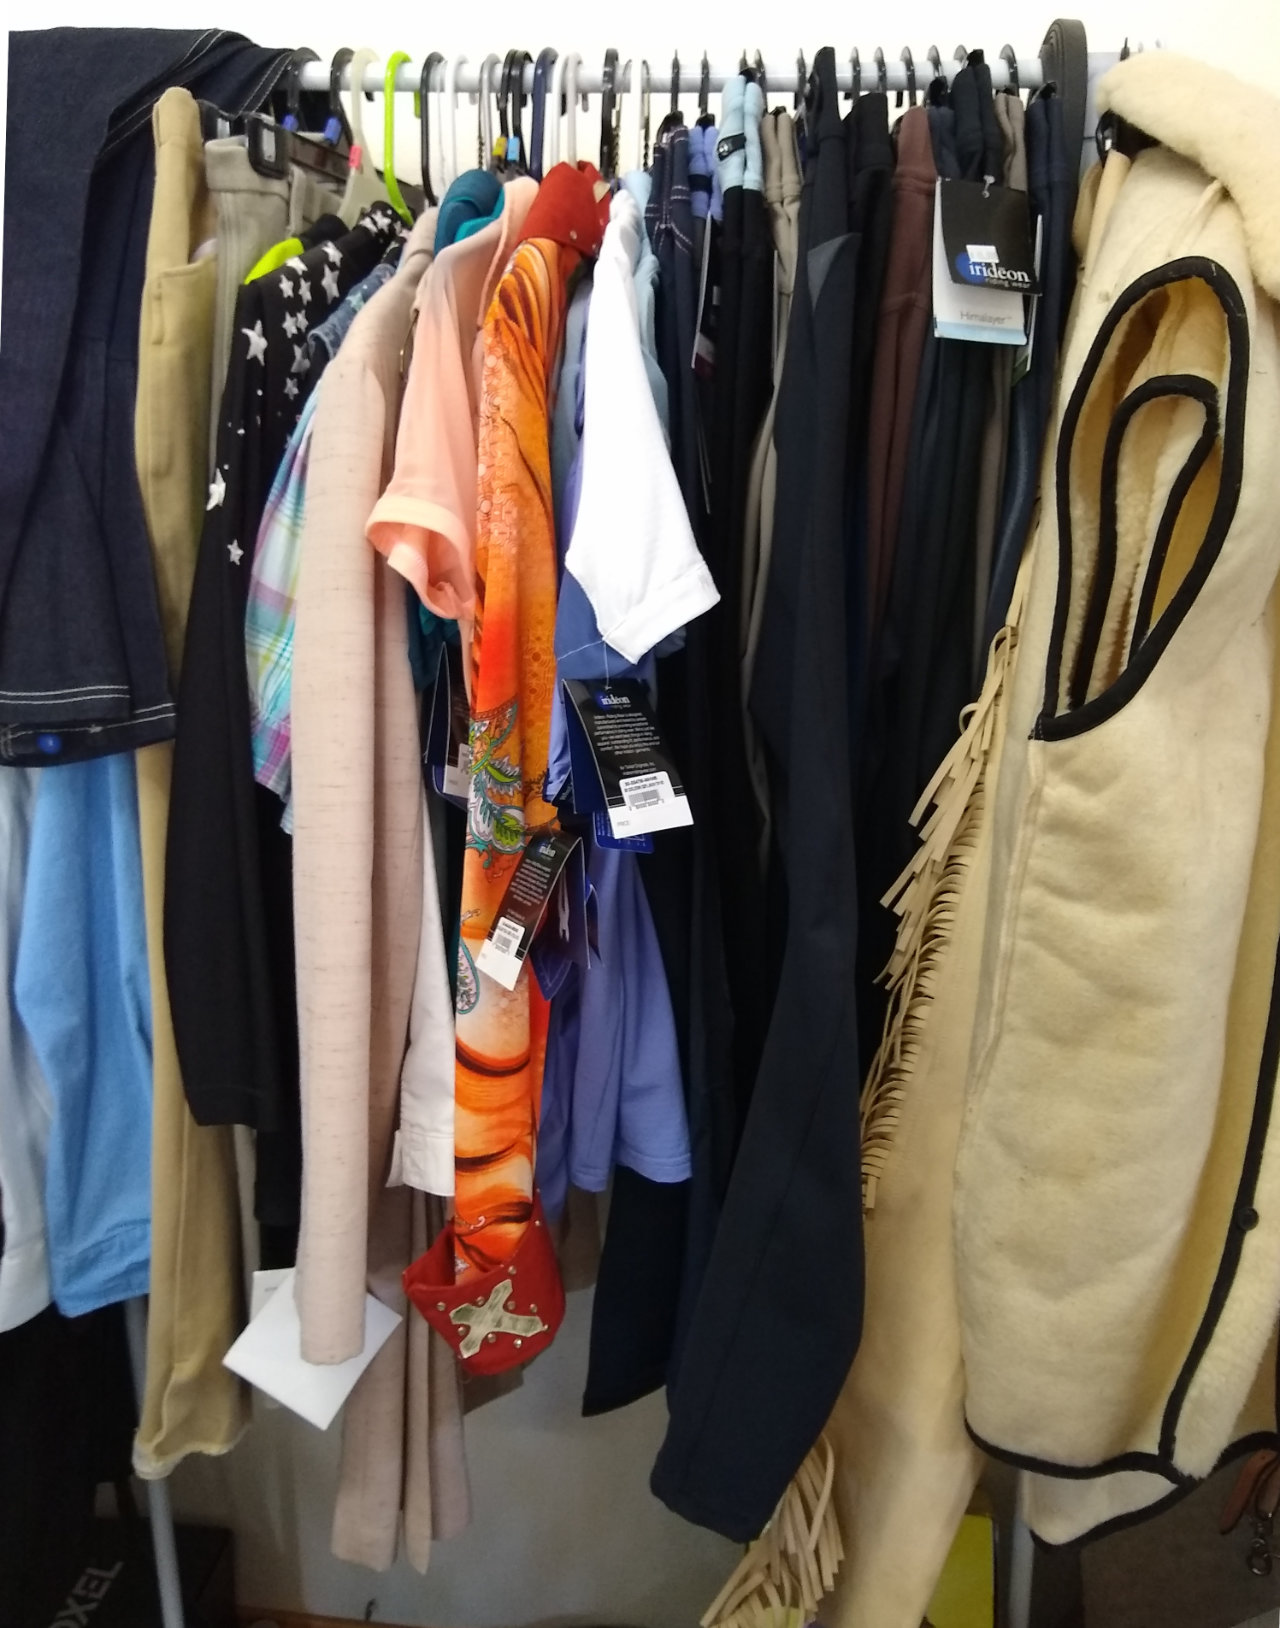 A selection of clothing